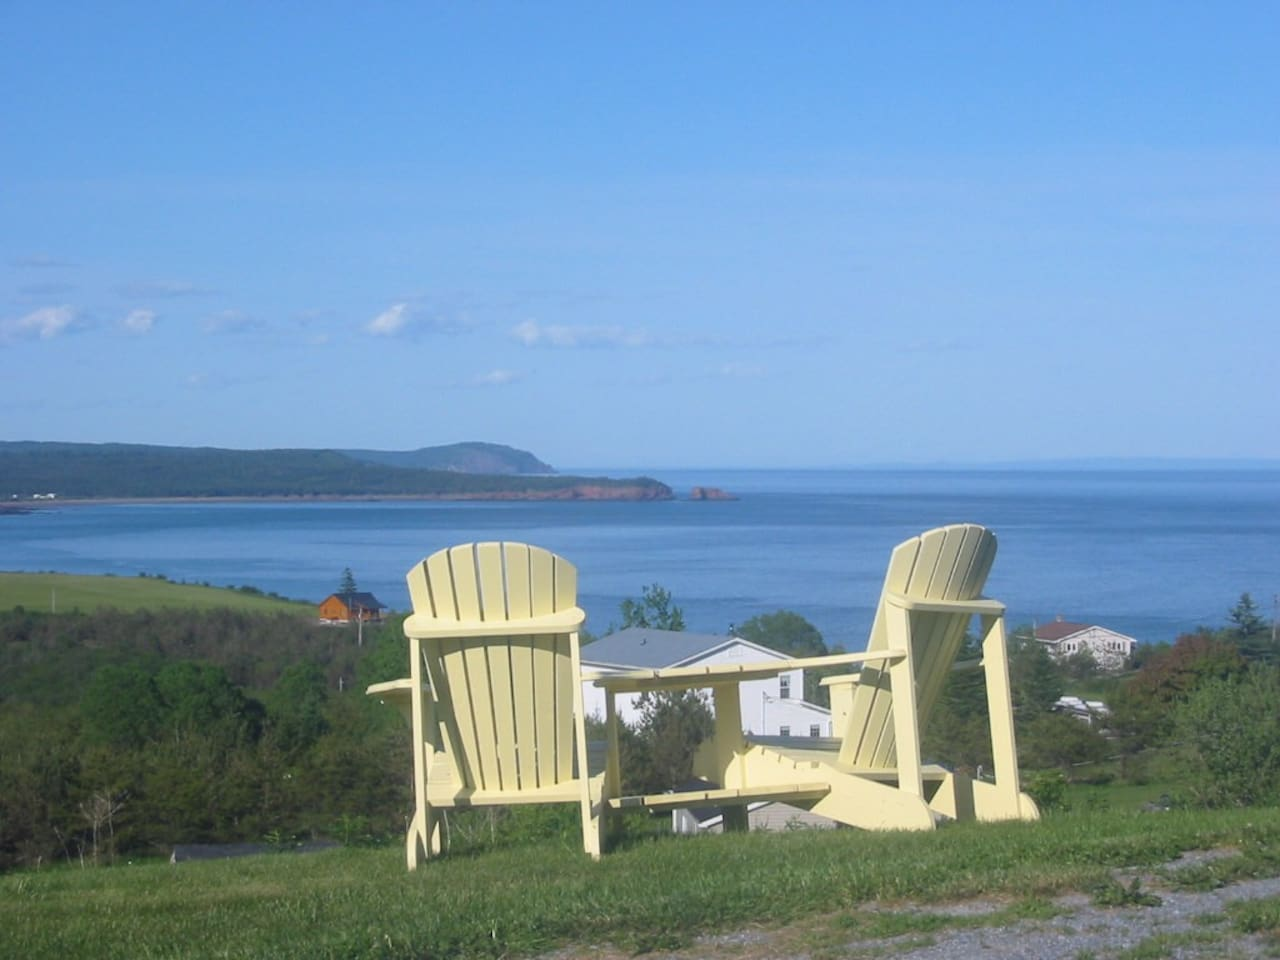 This is the view from my front lawn and the view from the window of this room. Over looking the beautiful Bay of Fundy tides. The highest tides in the world can be seen from these chairs.